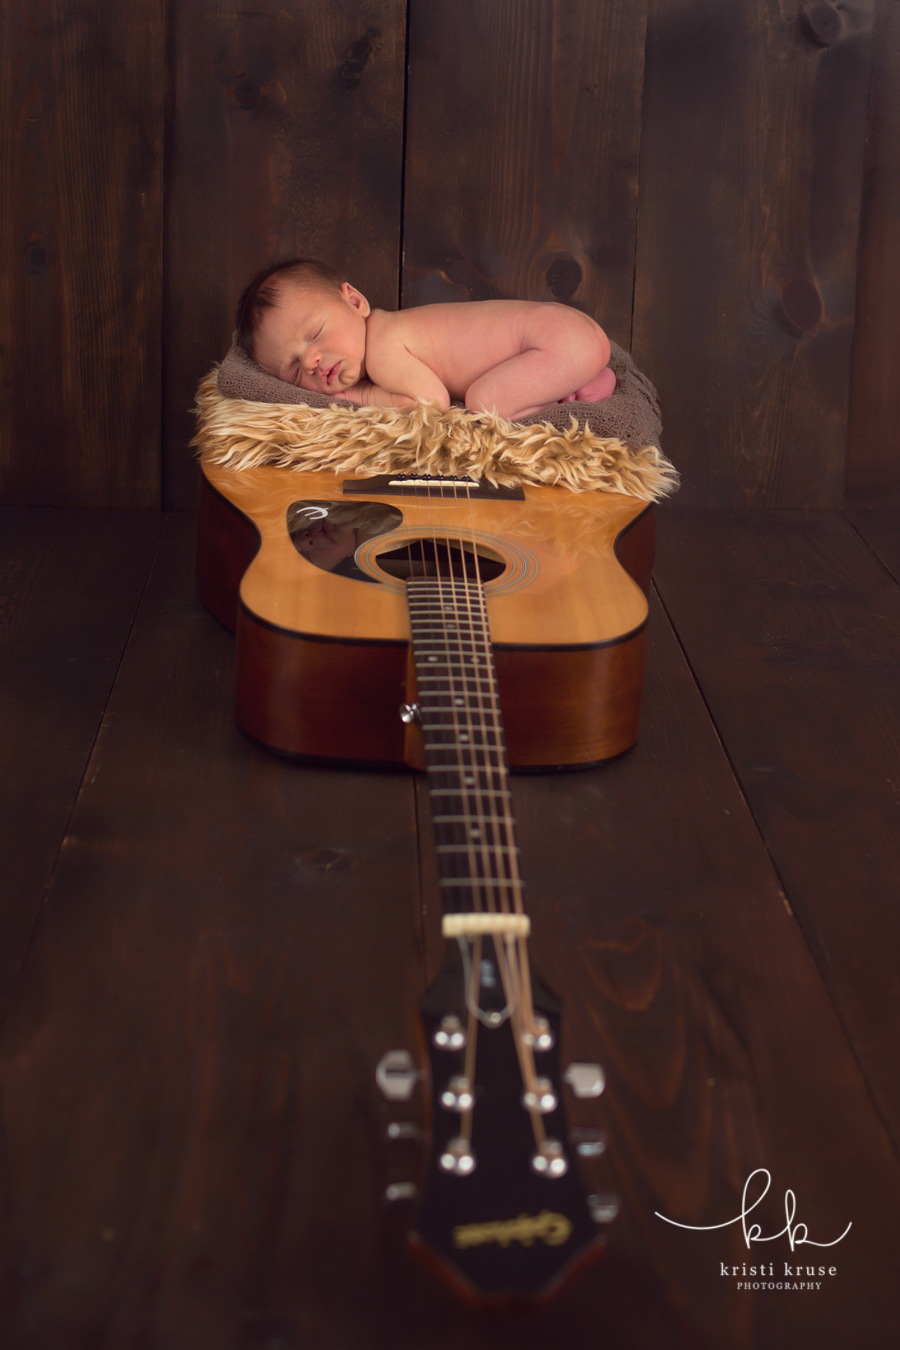 Baby boy laying on his father's guitar